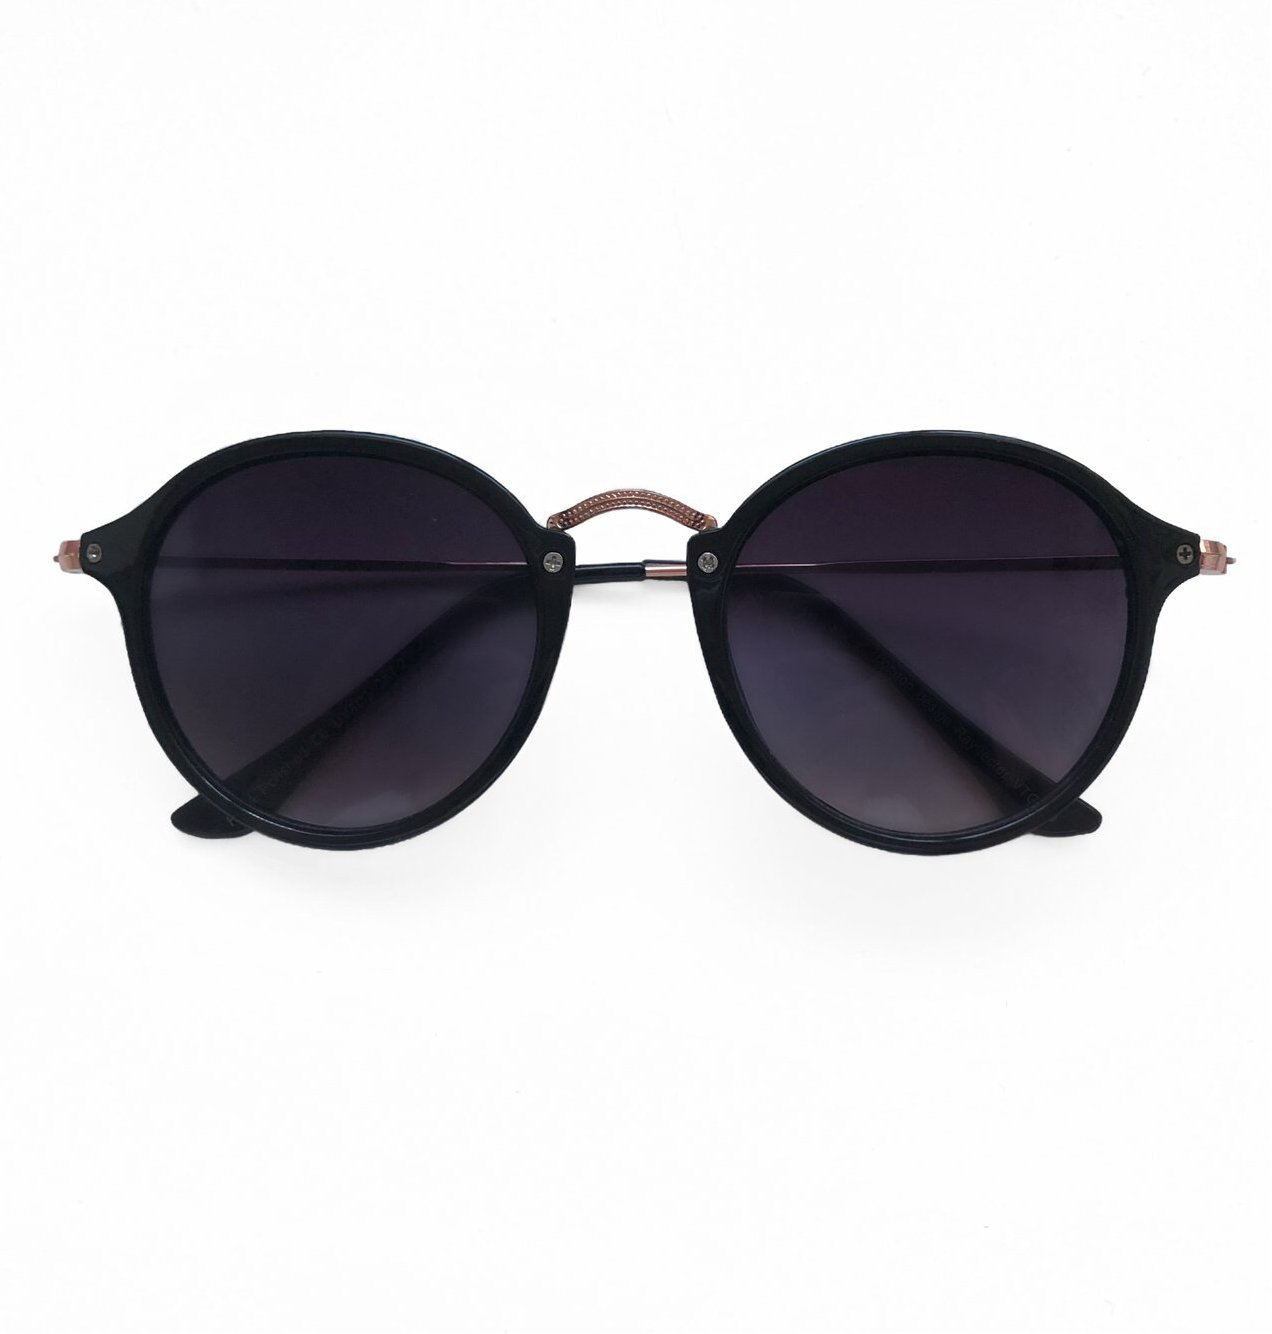 Marlene Sunglasses - Black Gold